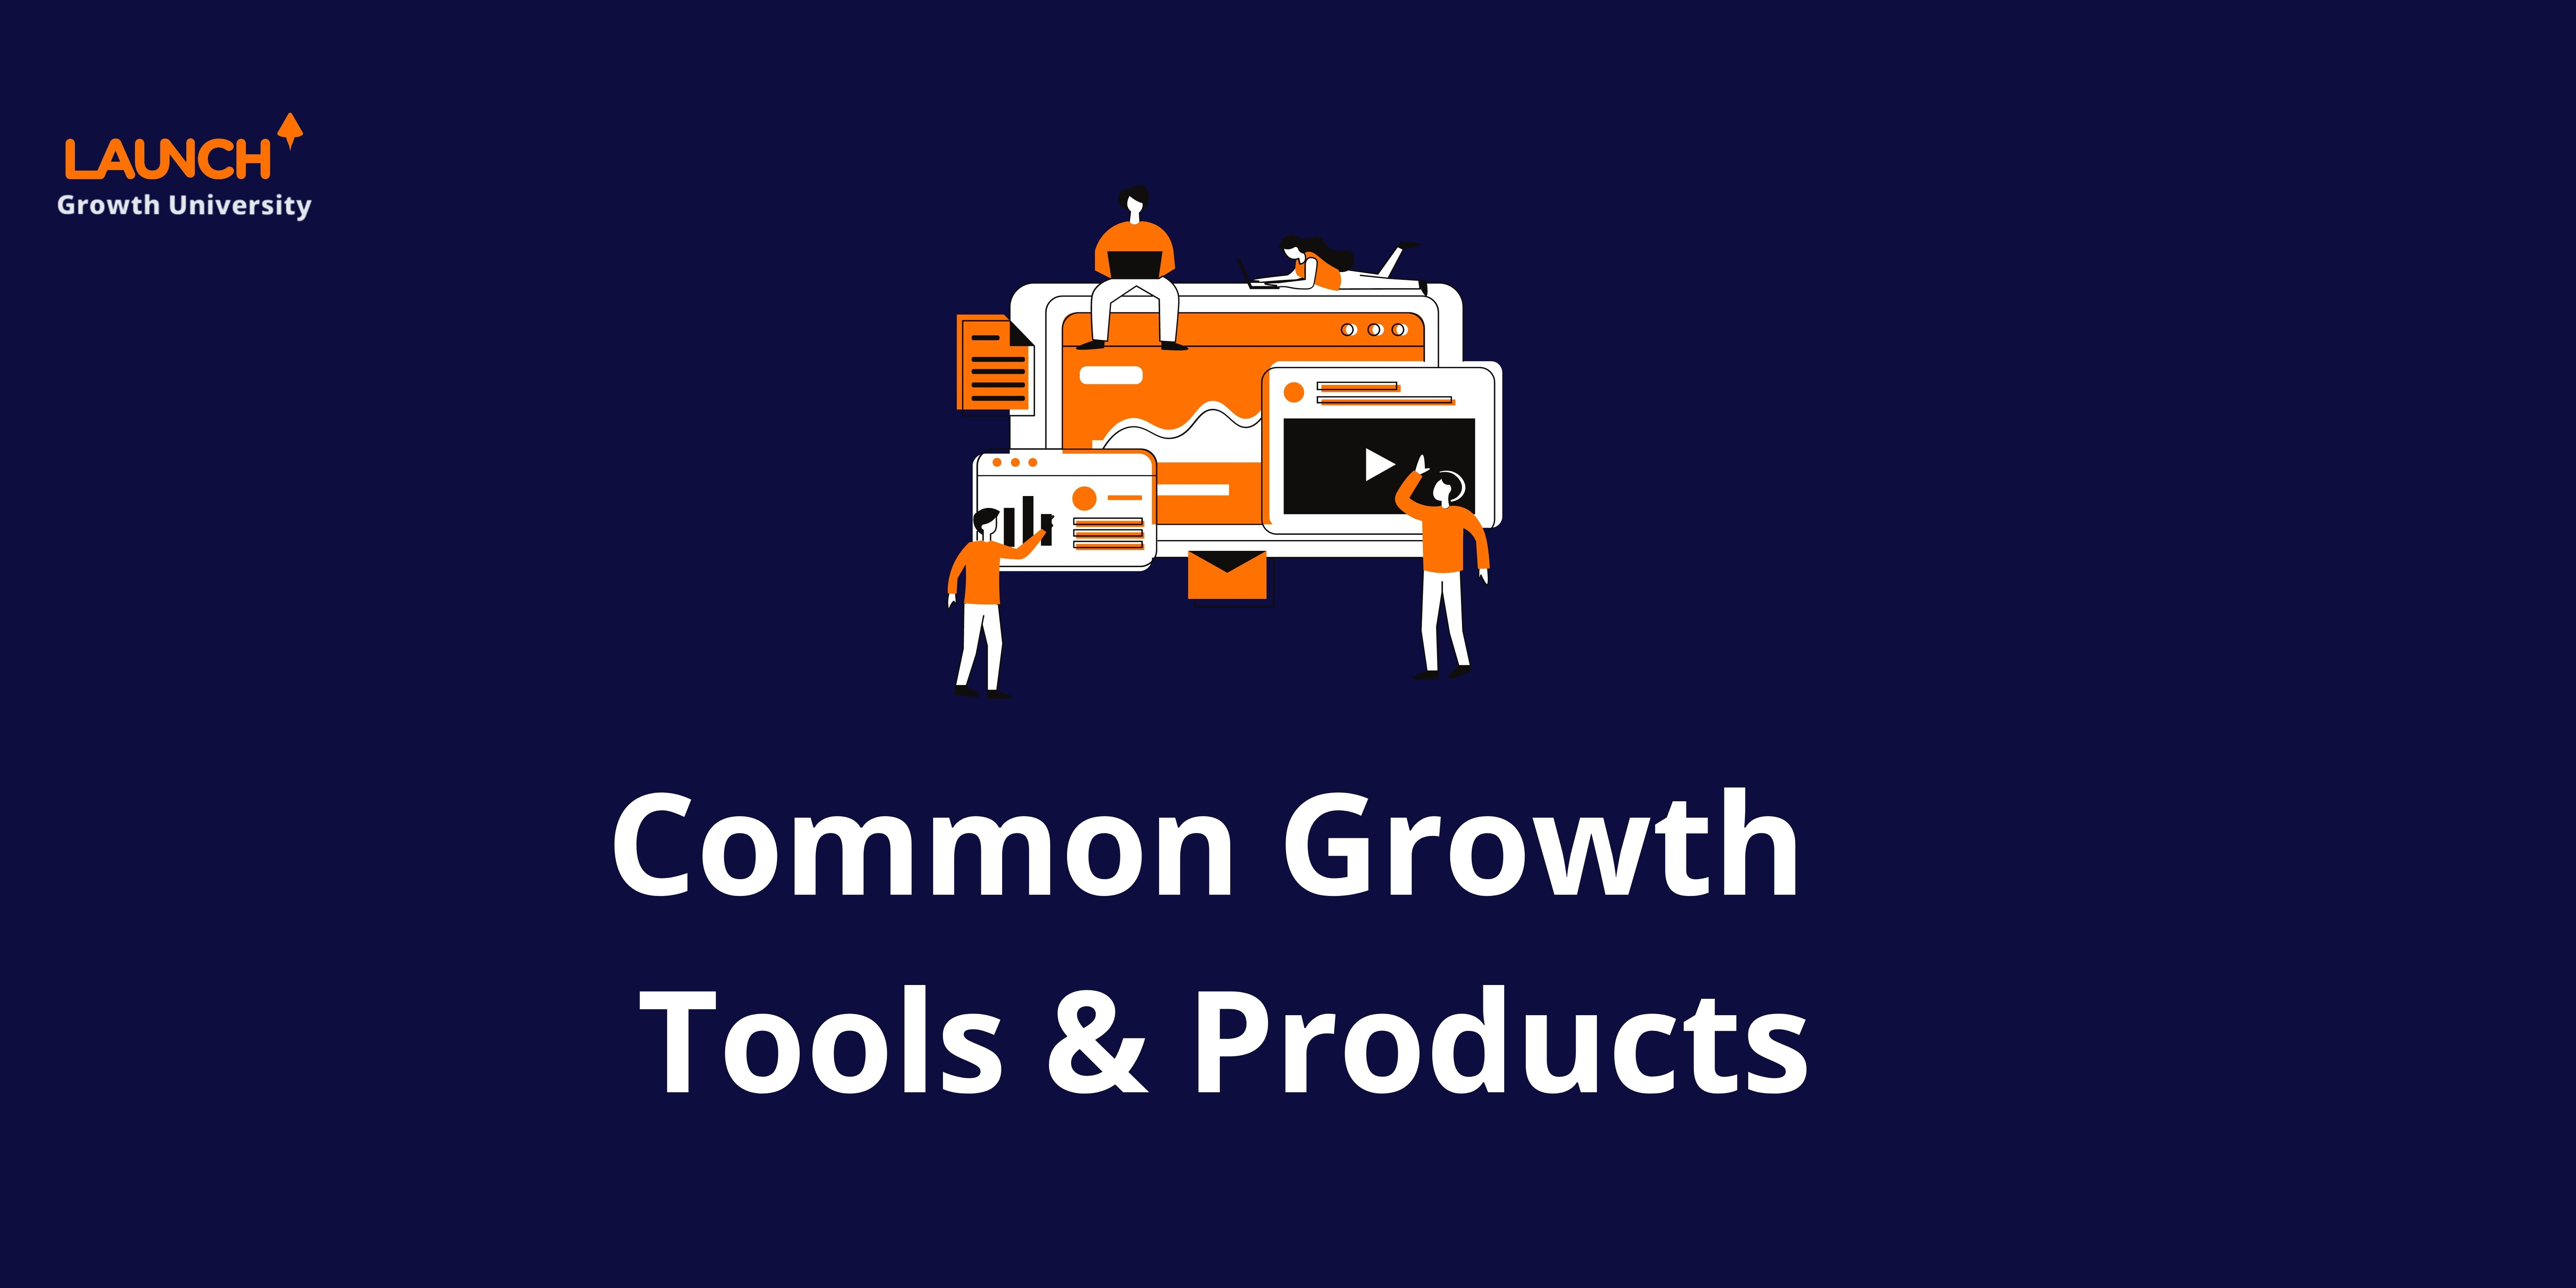 Common Growth Products & Tools